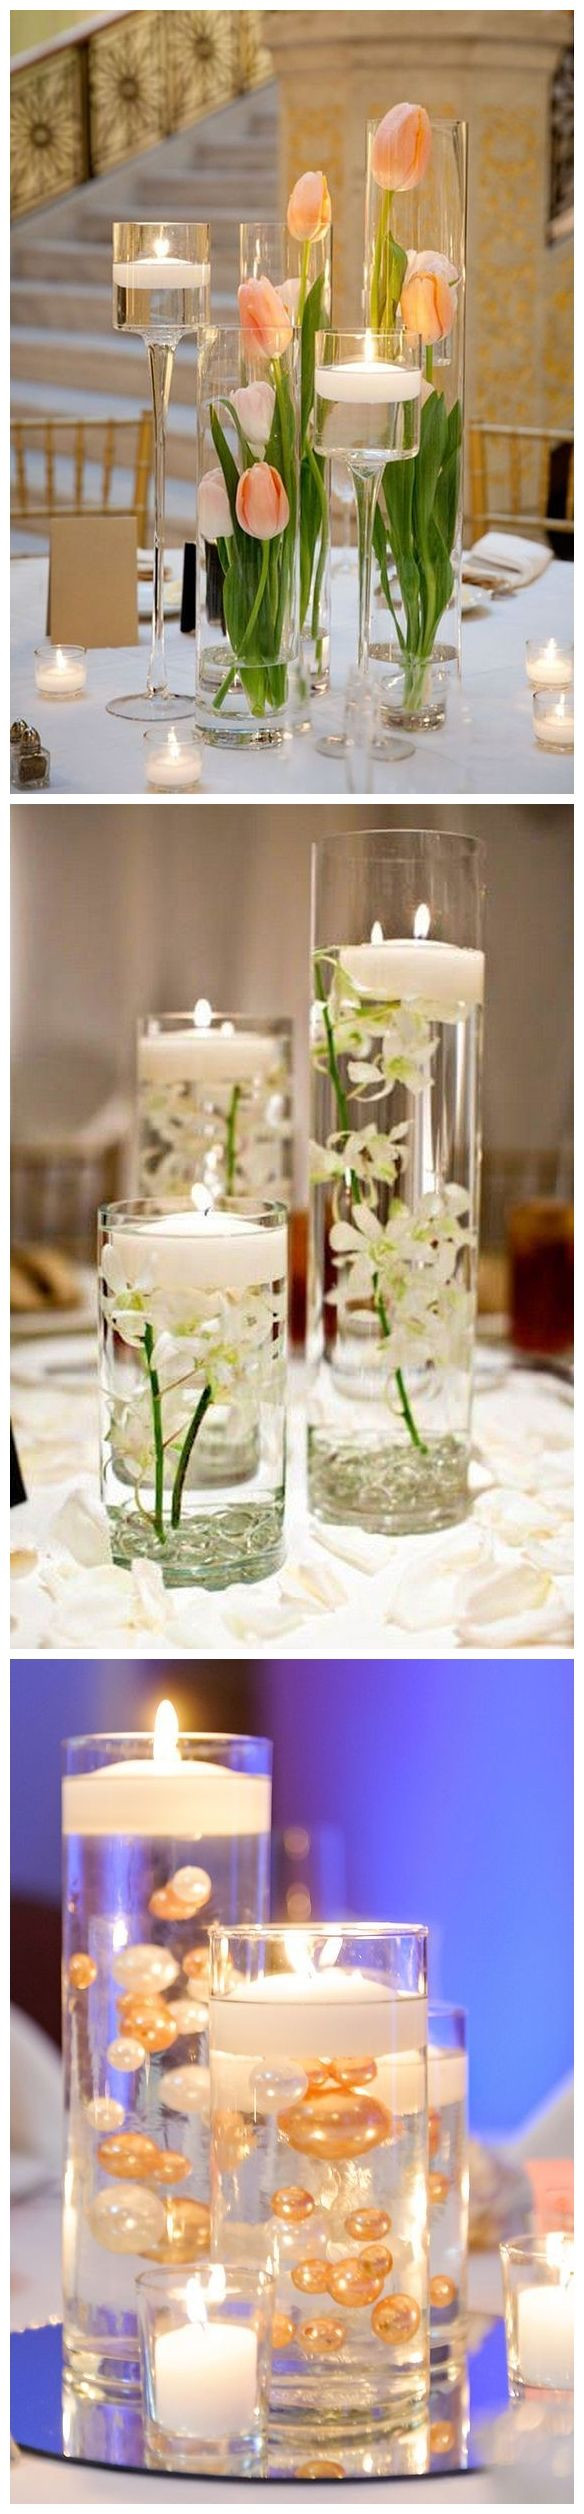 lenox floating hearts vase of 957 best flowers images on pinterest floral arrangements flower within 20 impossibly romantic floating wedding centerpieces